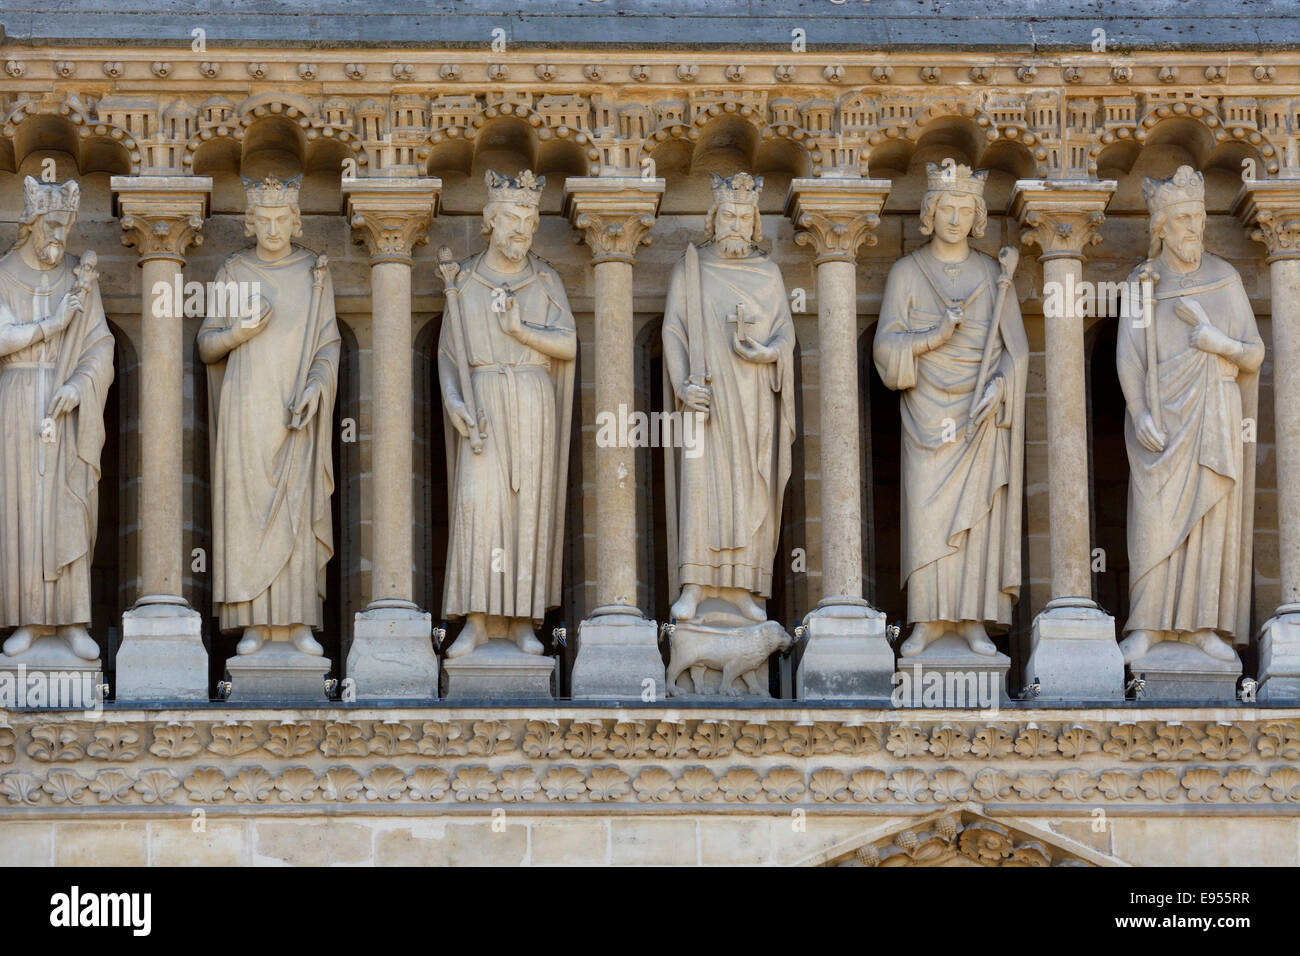 Statues over the main portal, Notre Dame de Paris cathedral, Paris, Ile-de-France, France Stock Photo